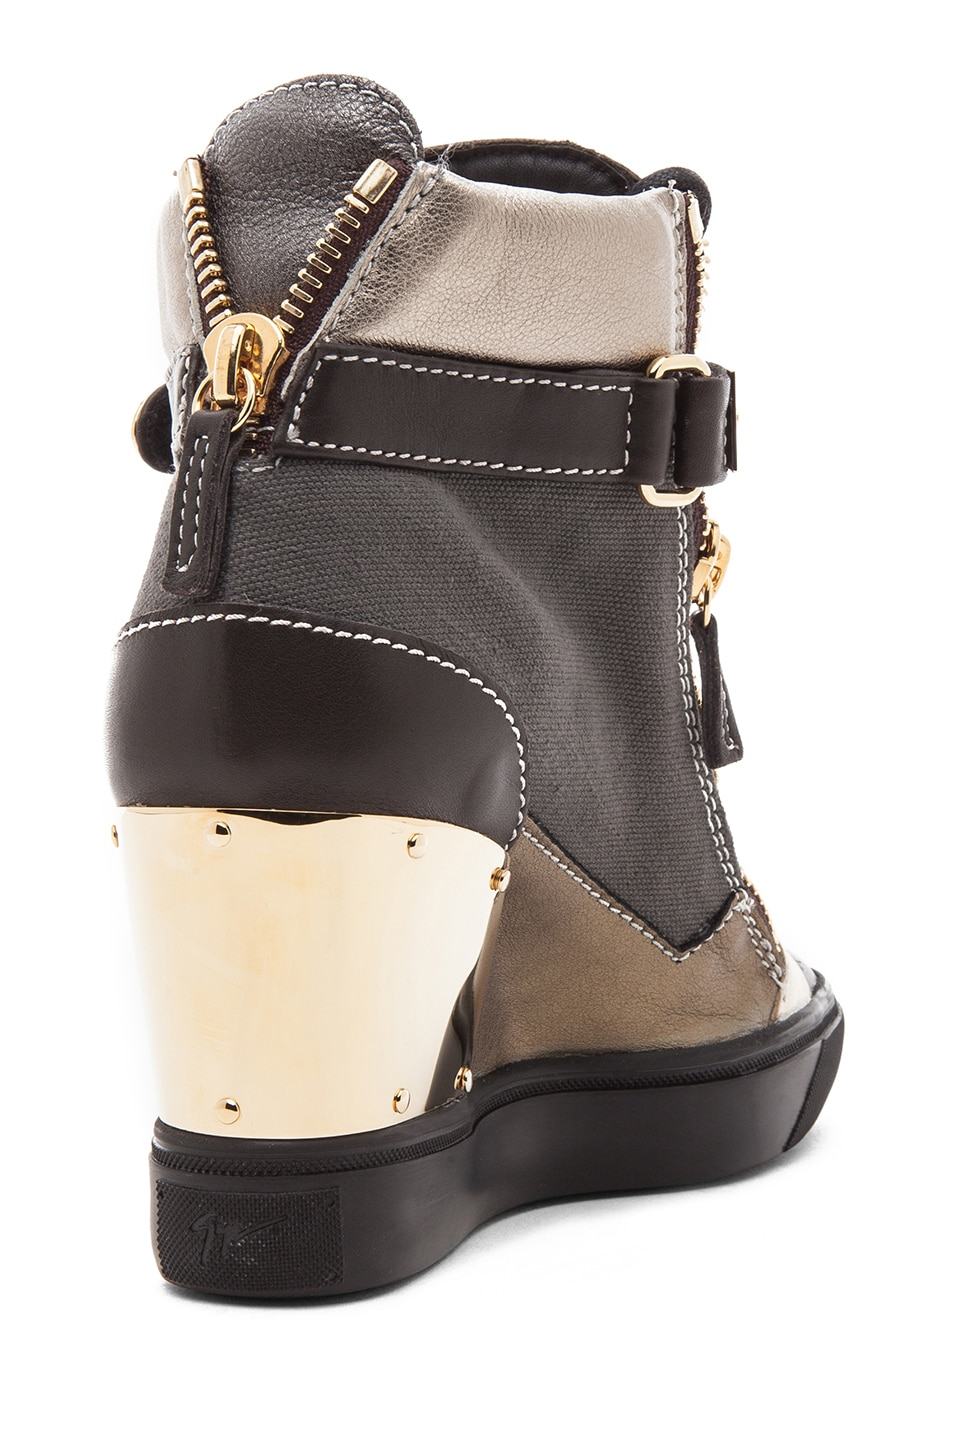 Image 3 of Giuseppe Zanotti Canvas & Leather Gold Strap Sneaker Wedge in Black Metallic